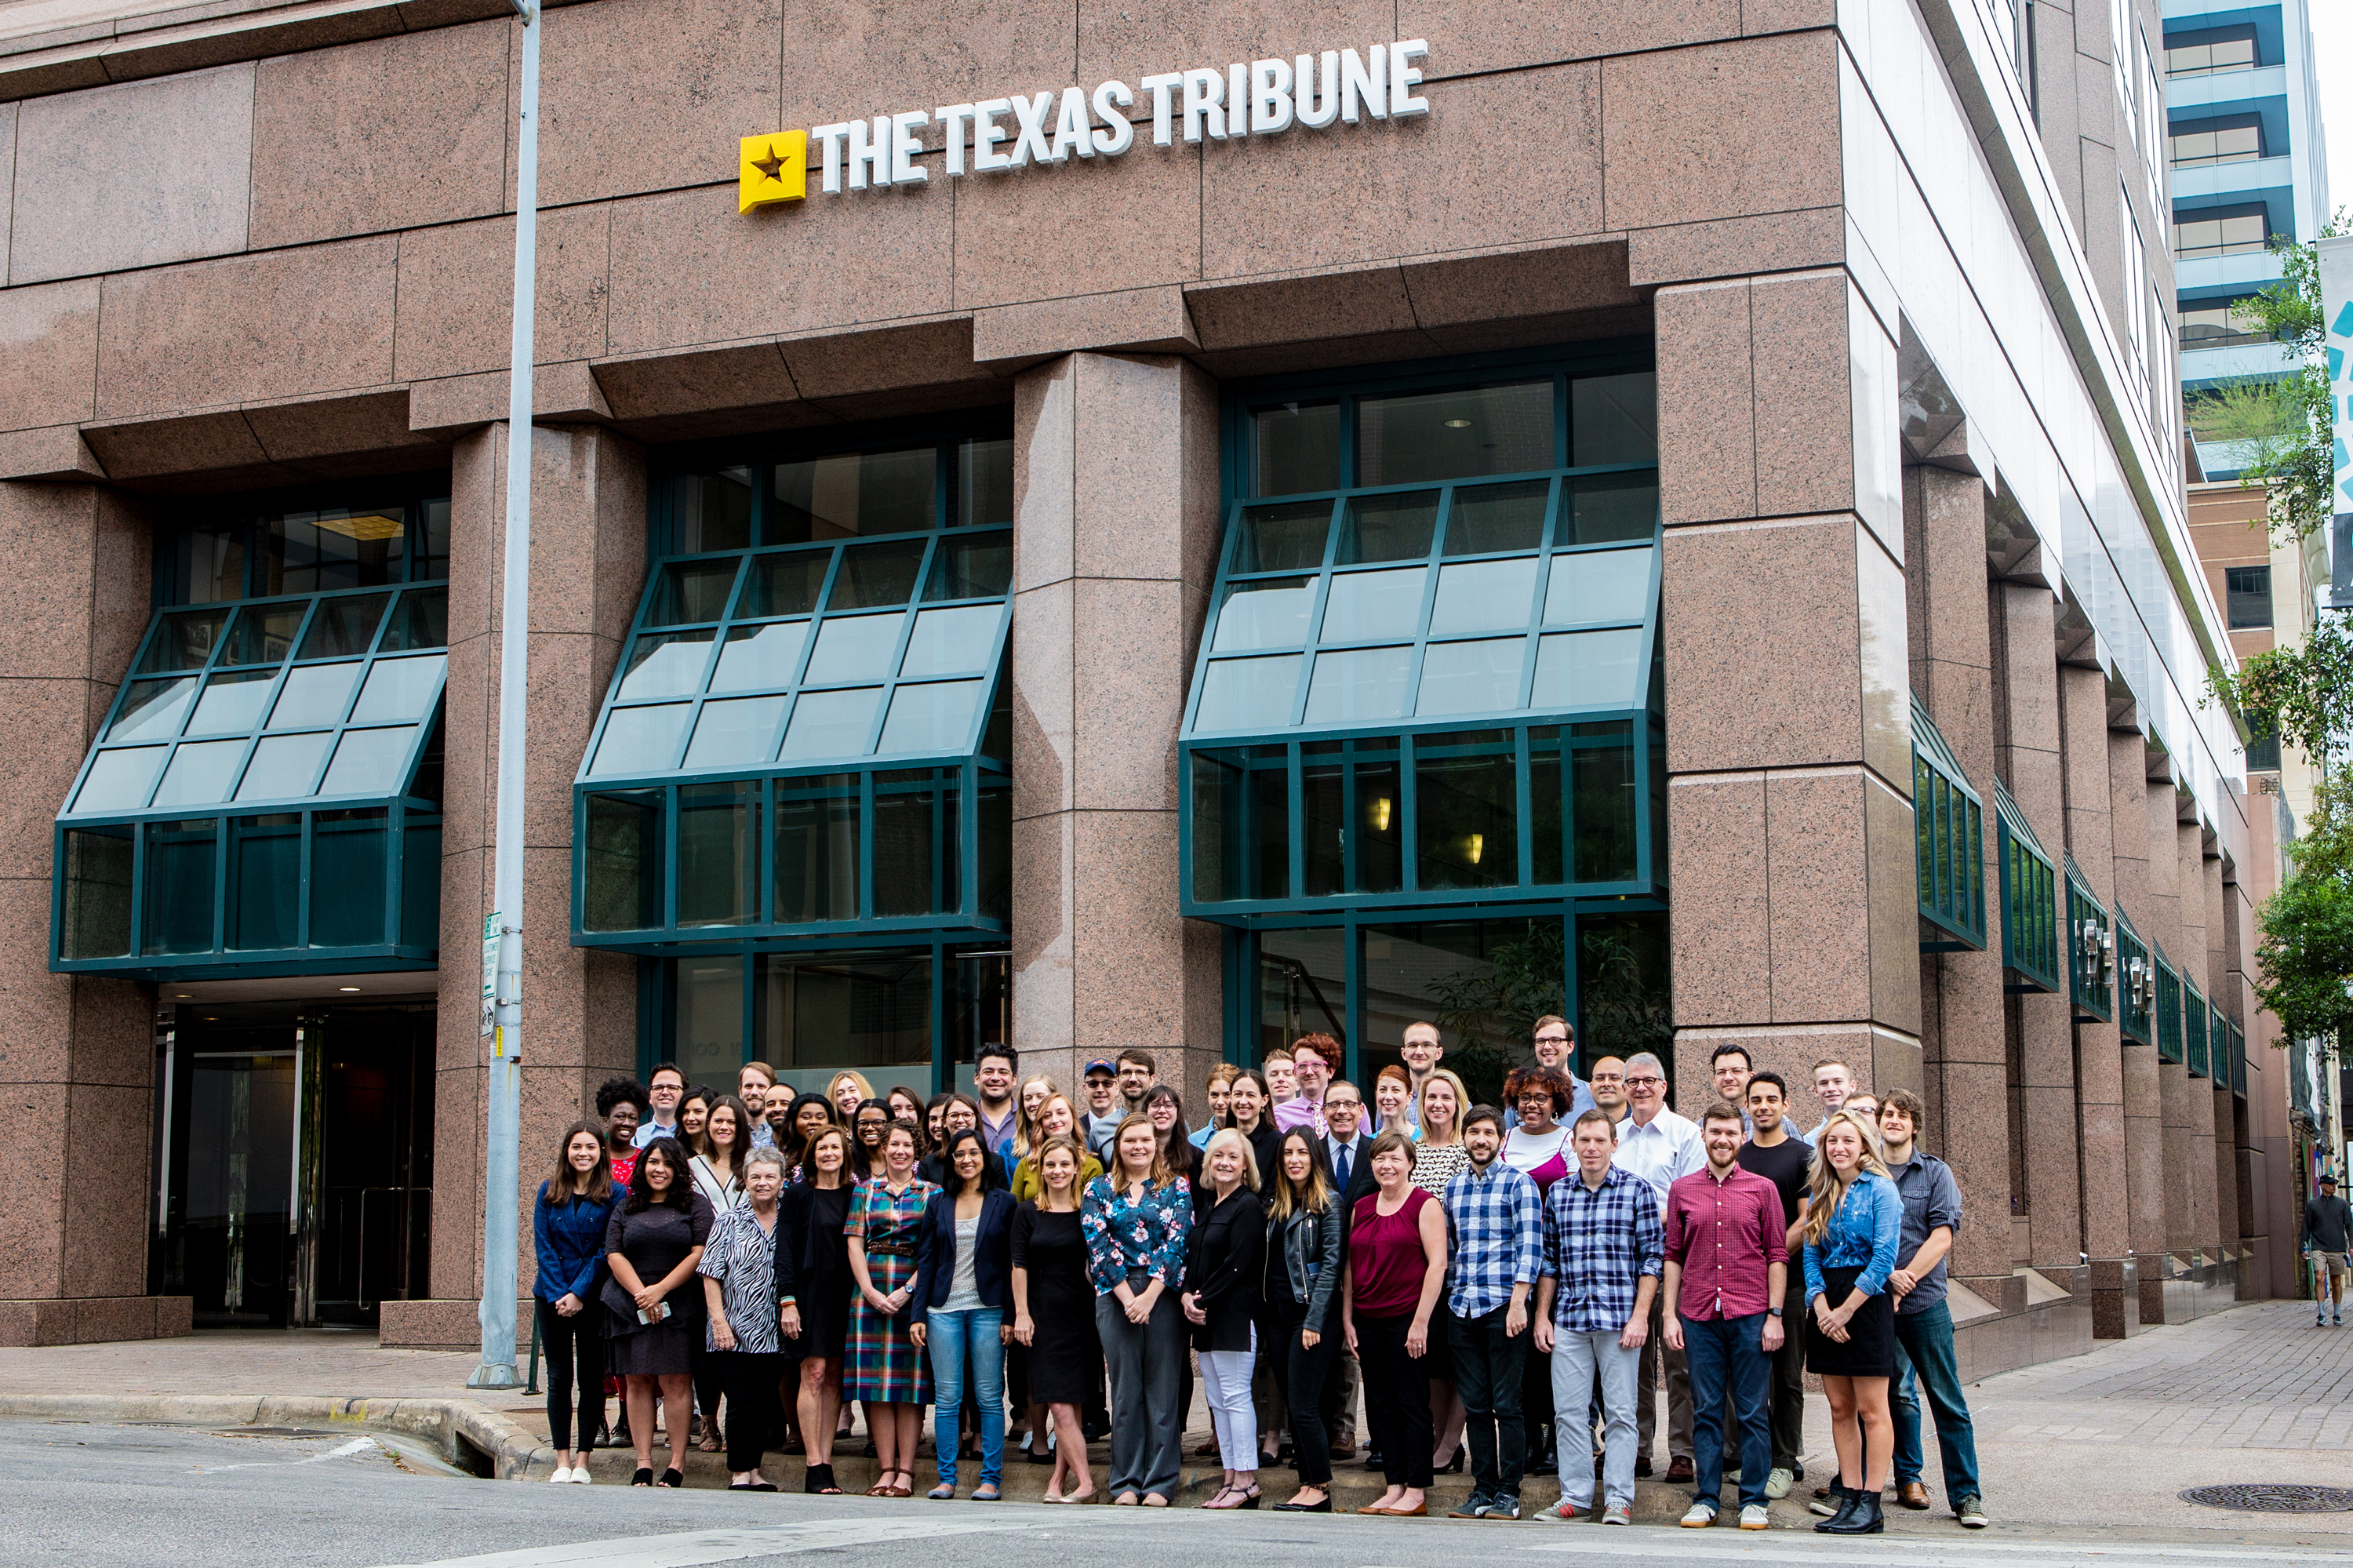 Members of the Texas Tribune staff stand together in front their headquarters.